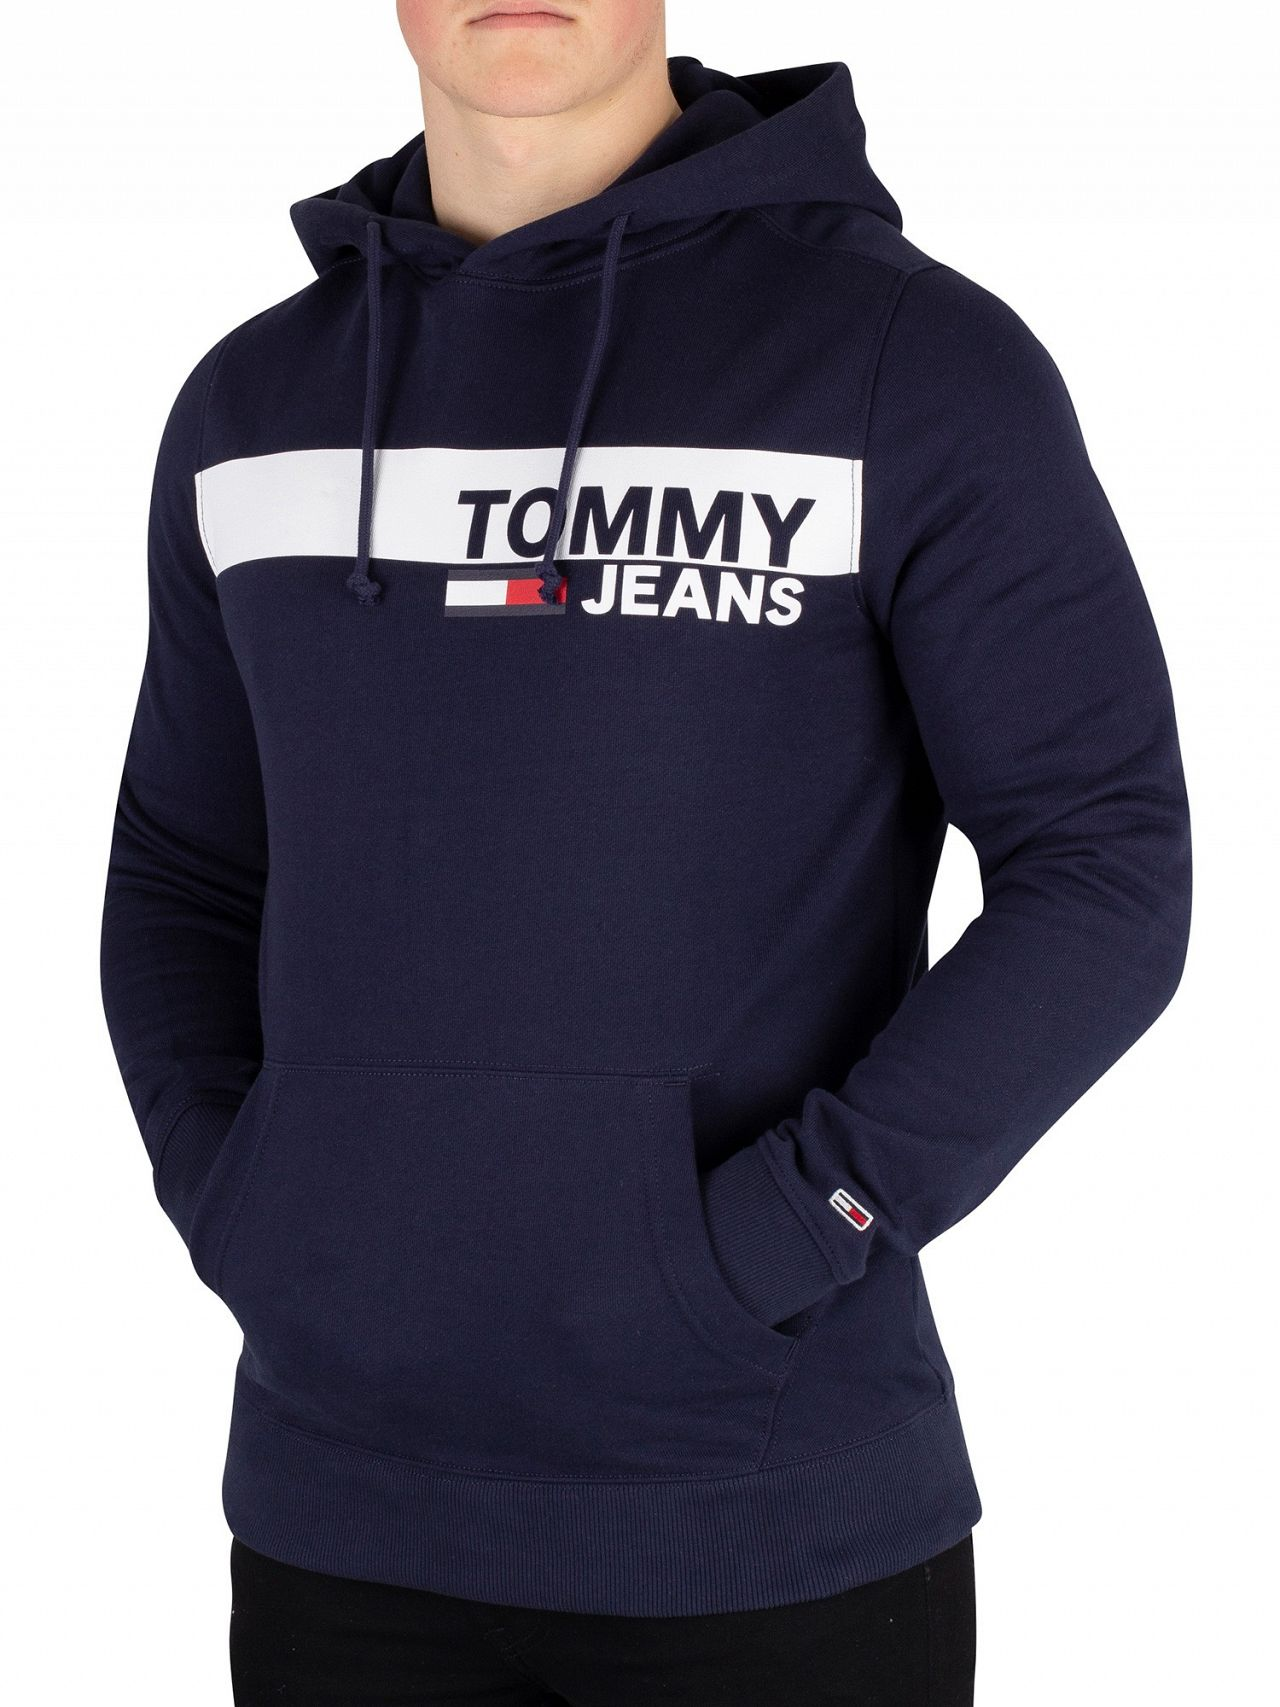 29e2c562 Tommy Jeans Black Iris Navy Essential Graphic Pullover Hoodie | Standout